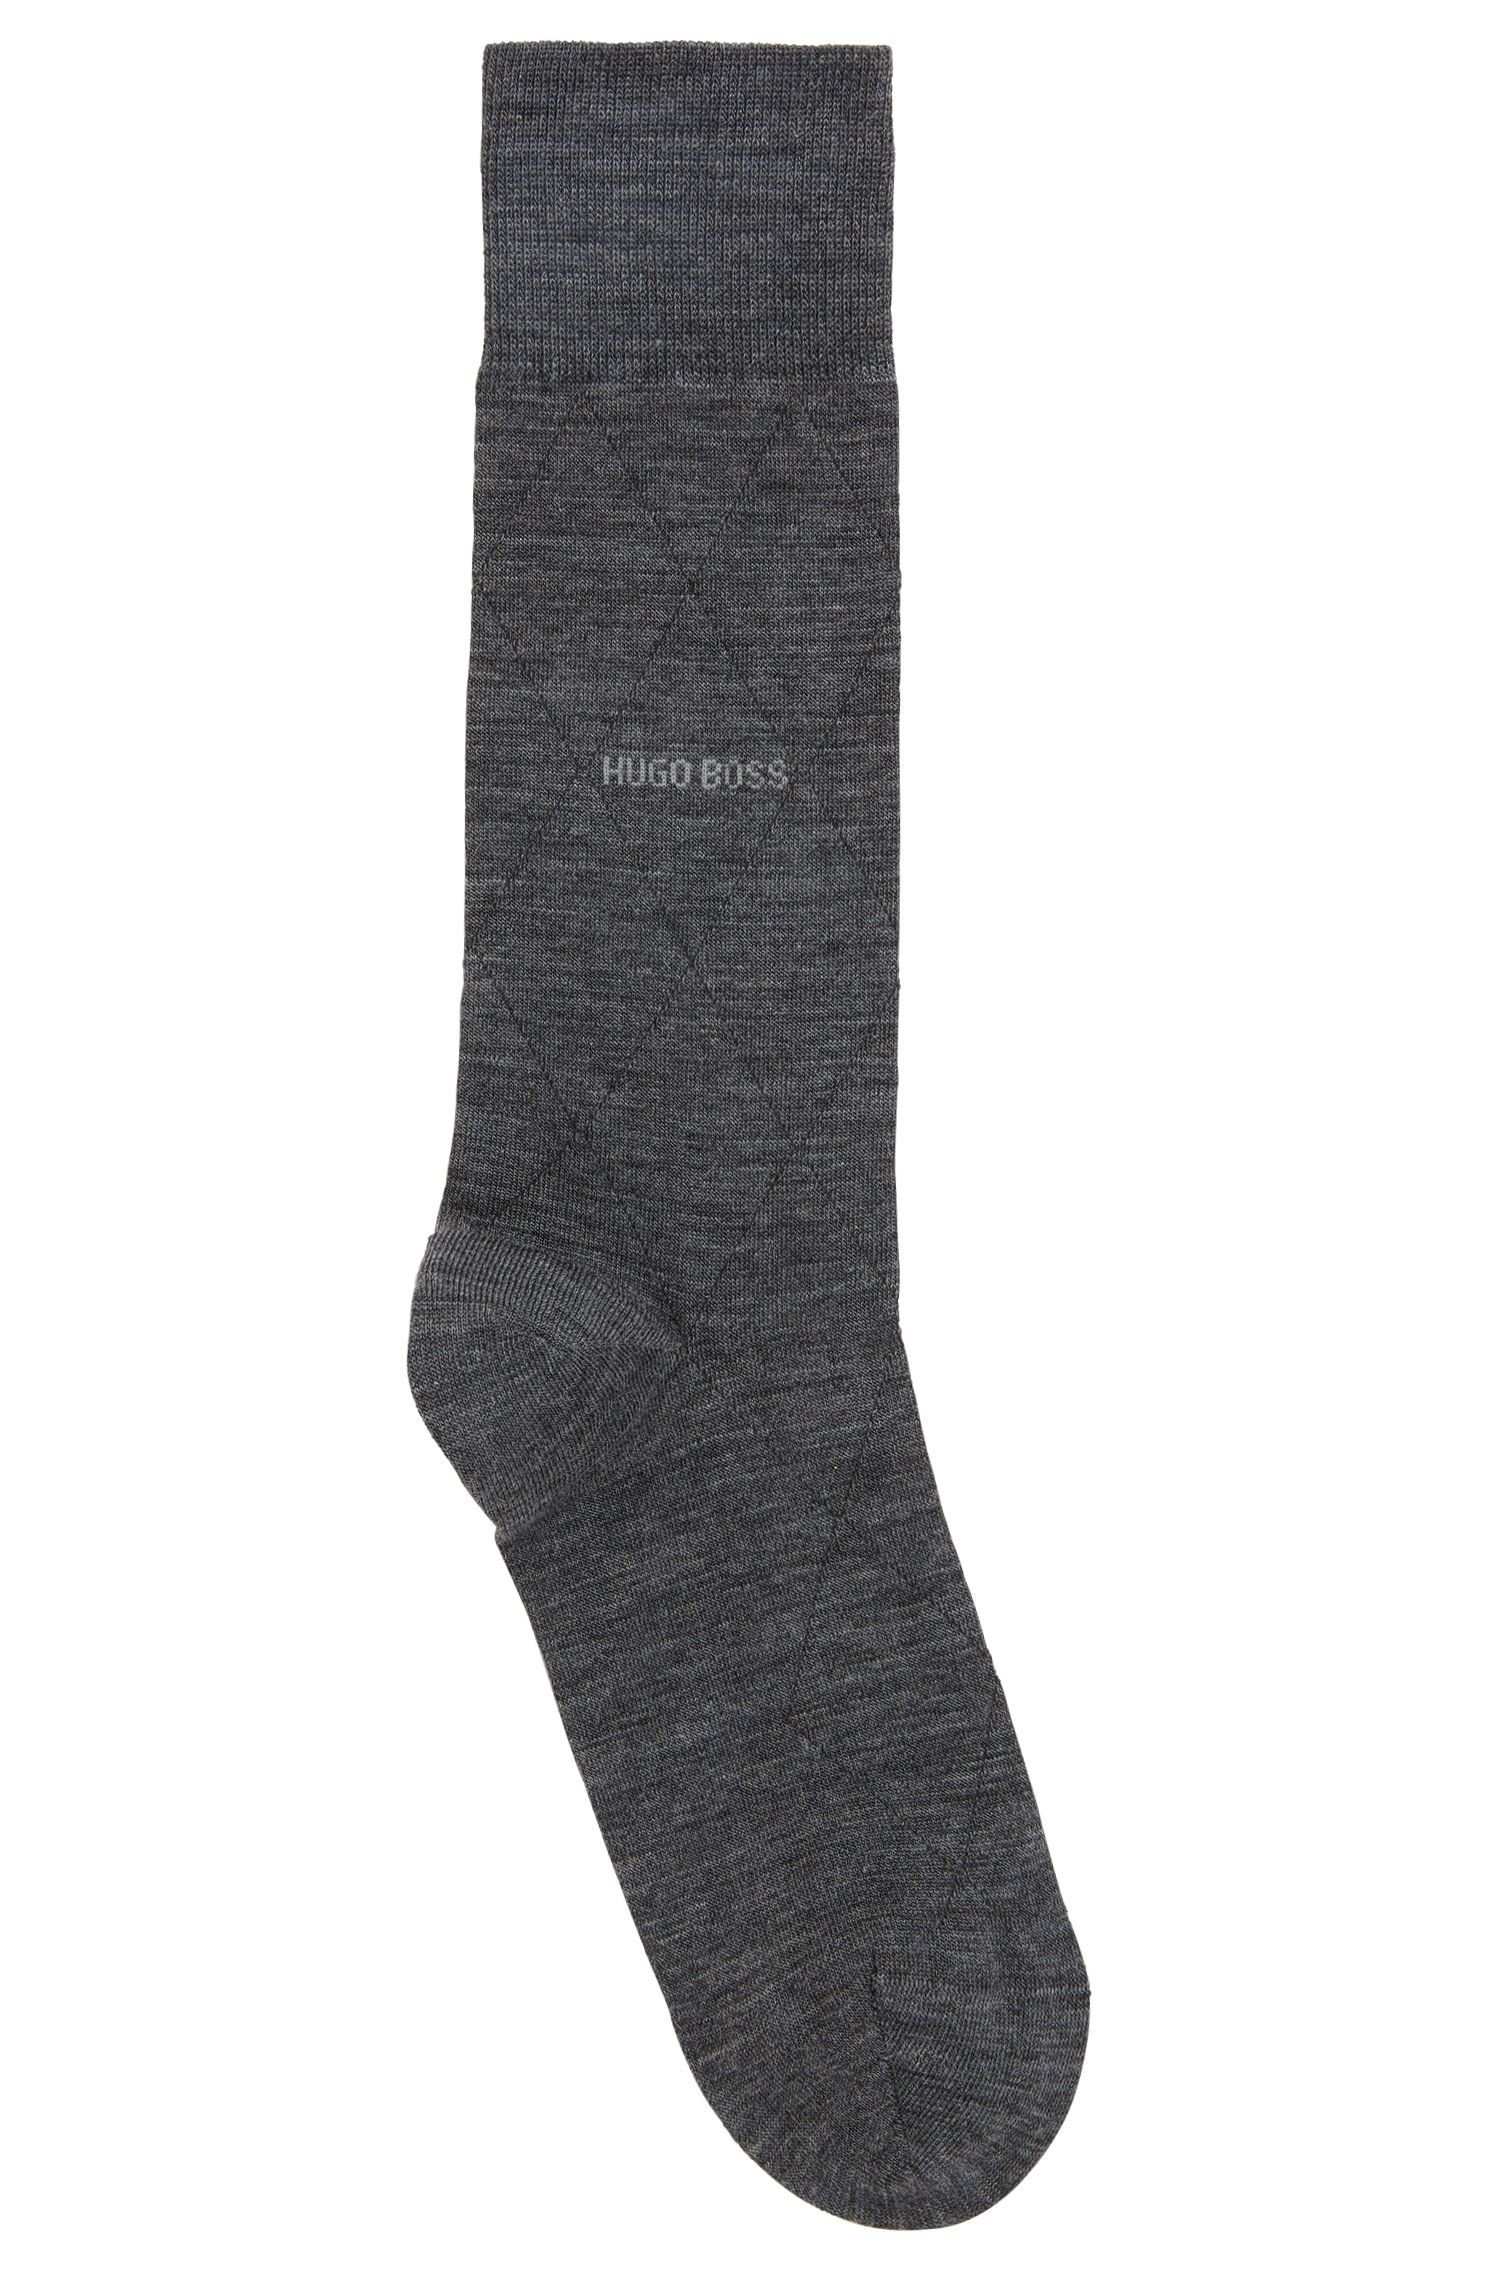 Lightweight socks in a stretch wool blend